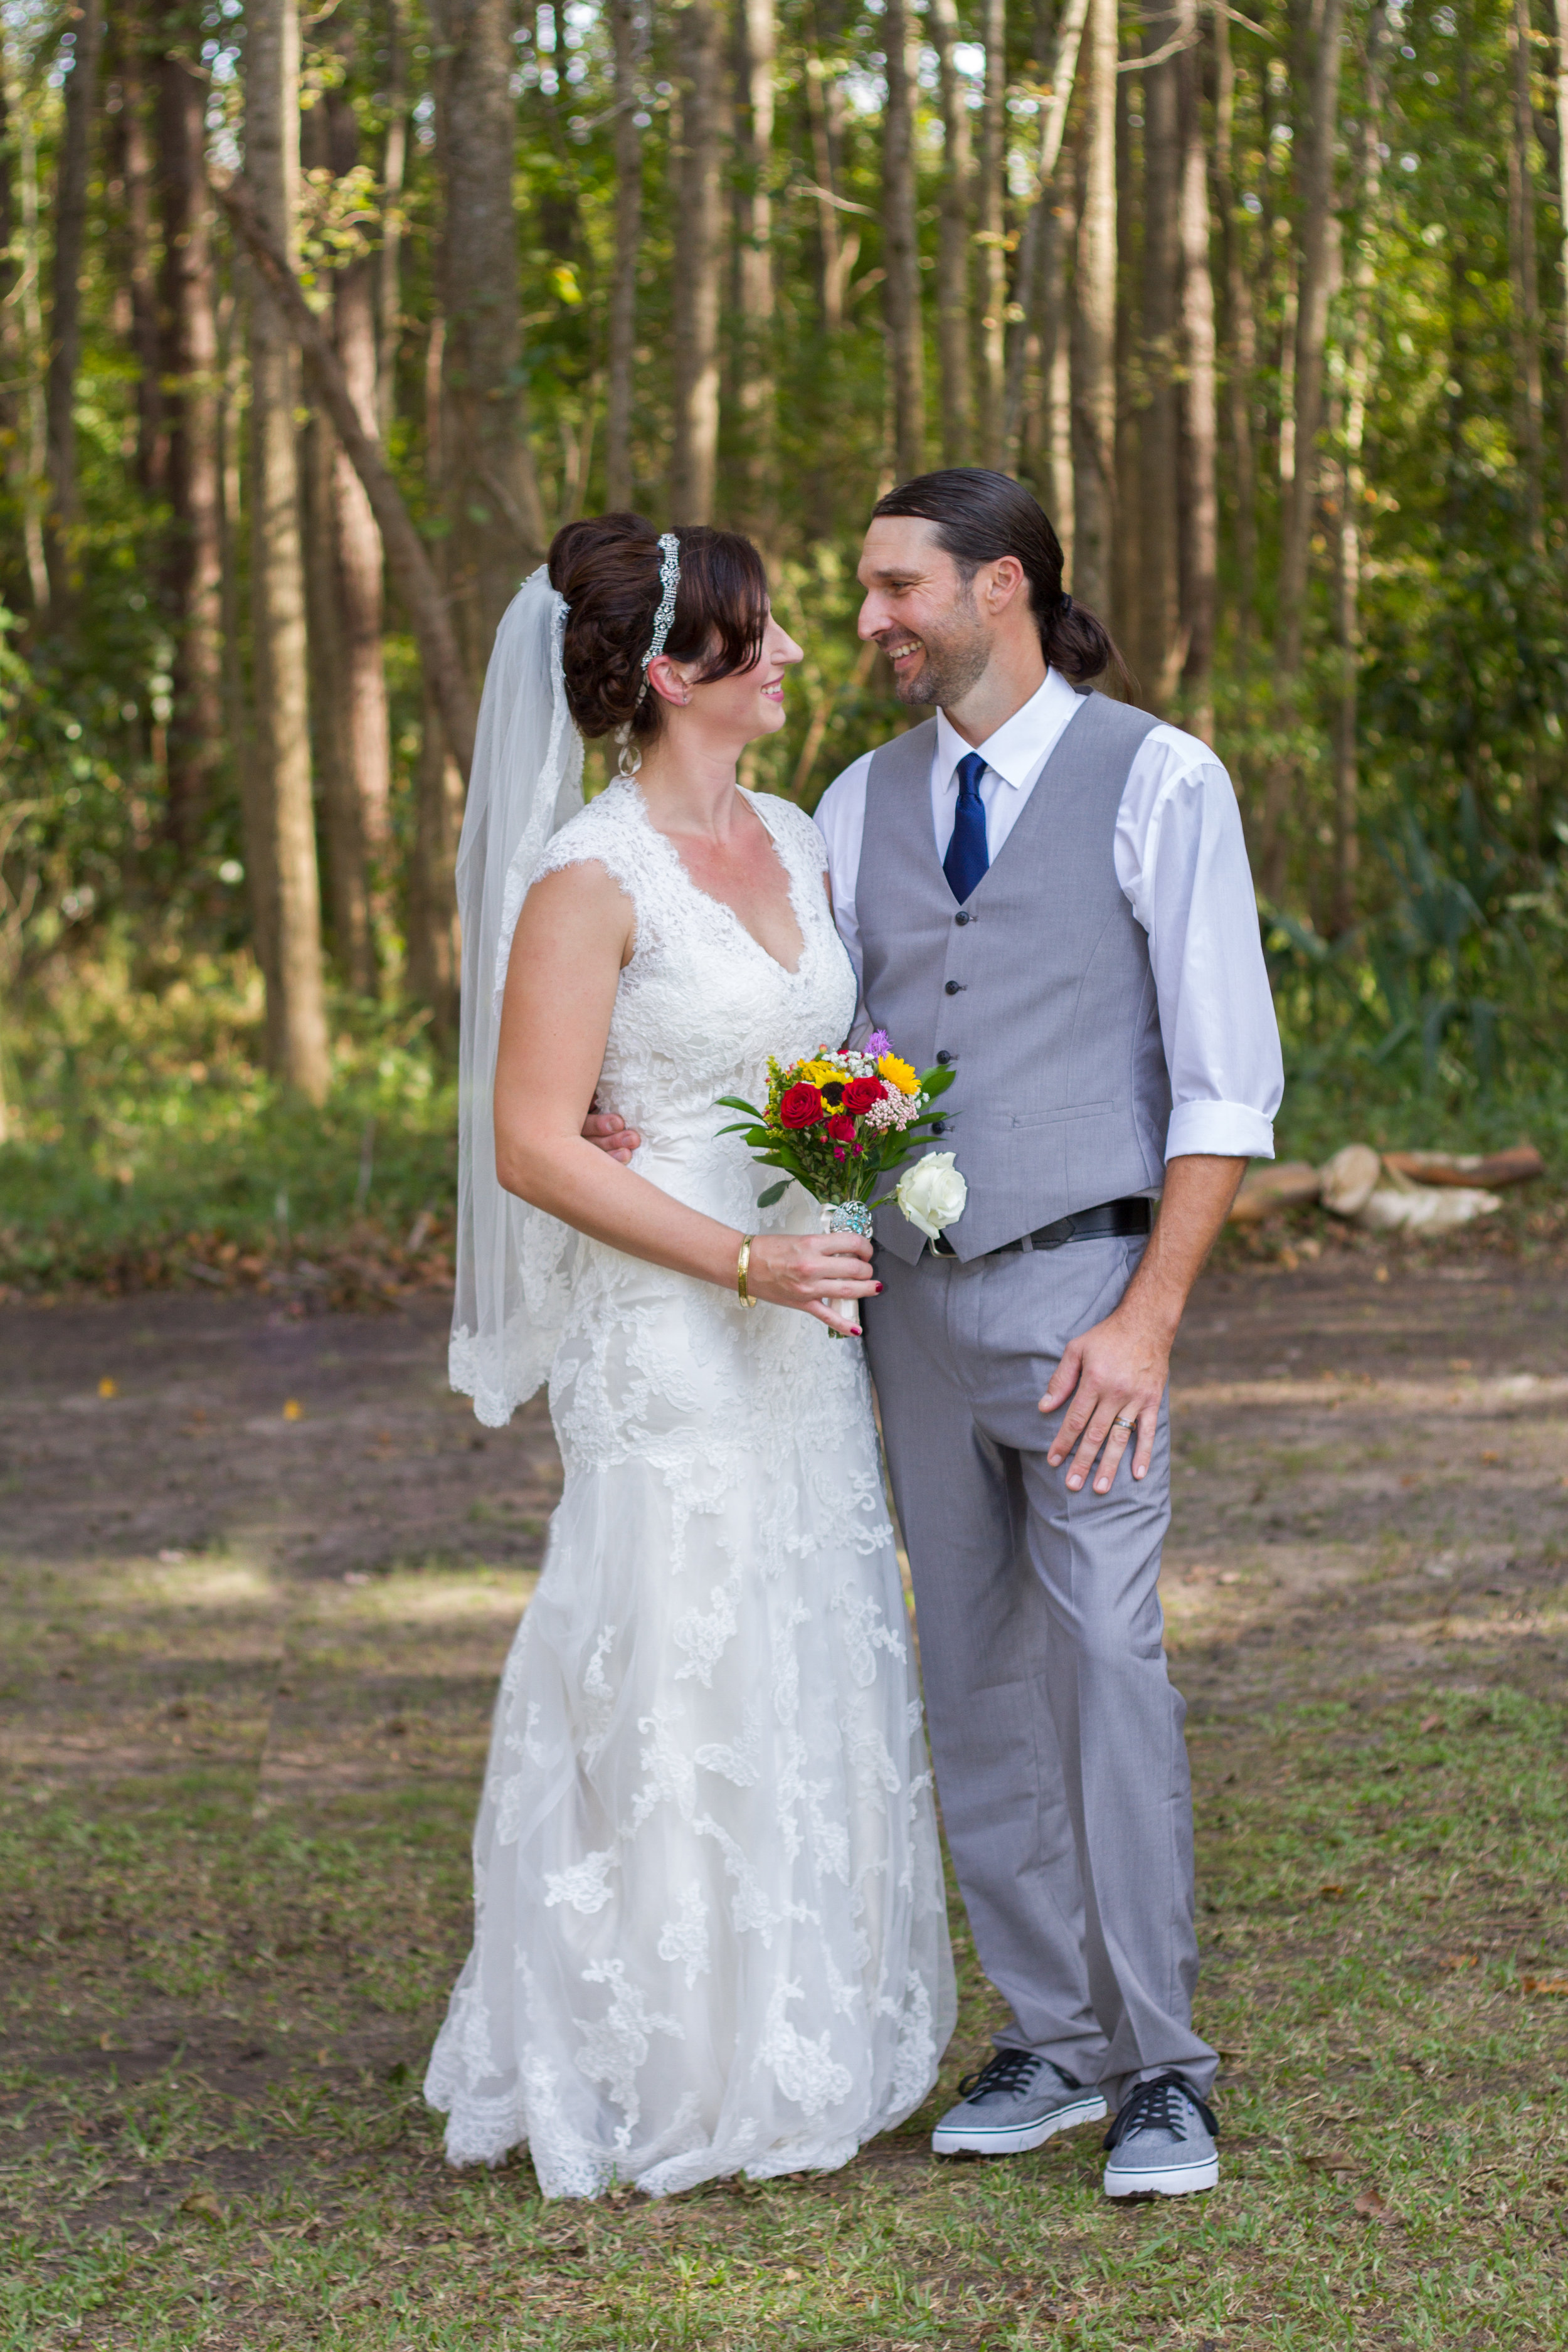 Jacqueline and Shawn Wedding (268 of 597).jpg